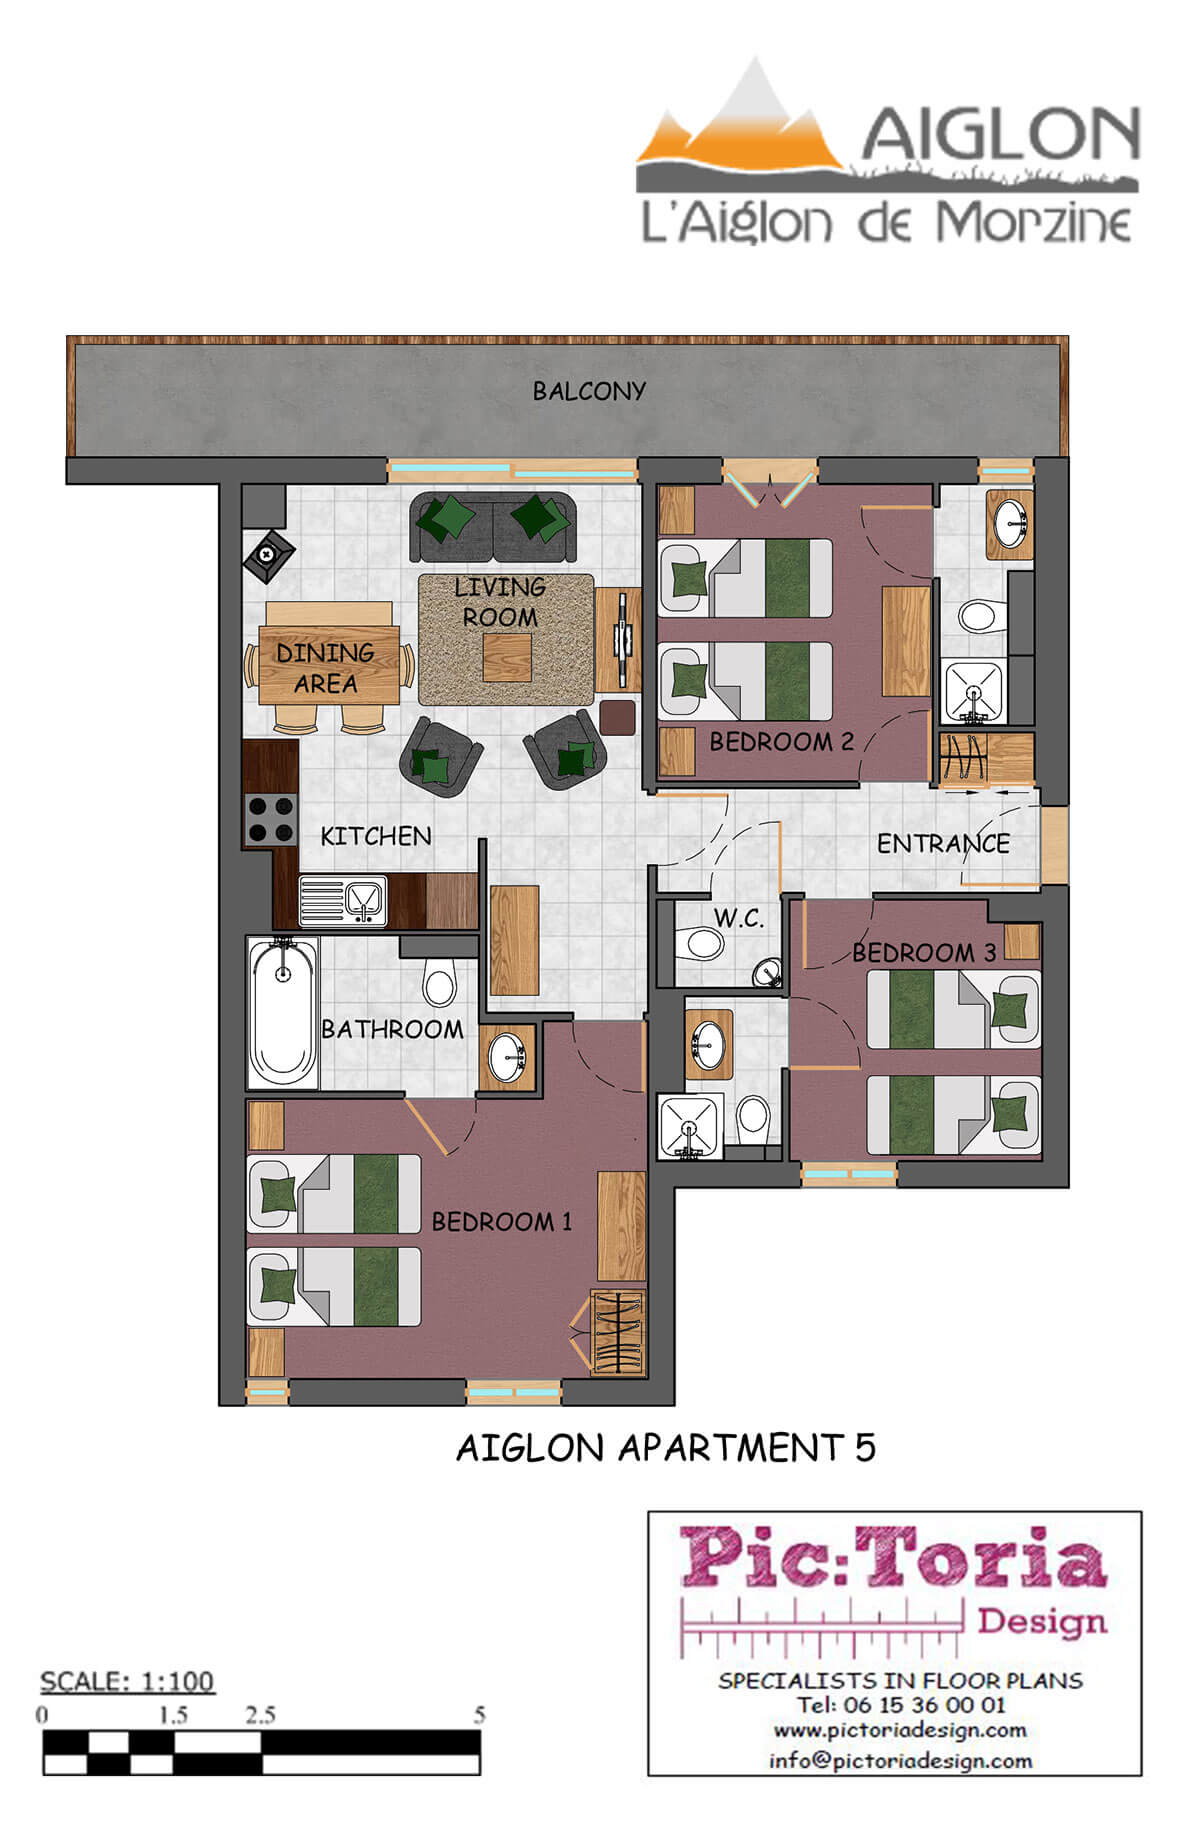 Image of Aiglon Morzine apartment 5 floor plan